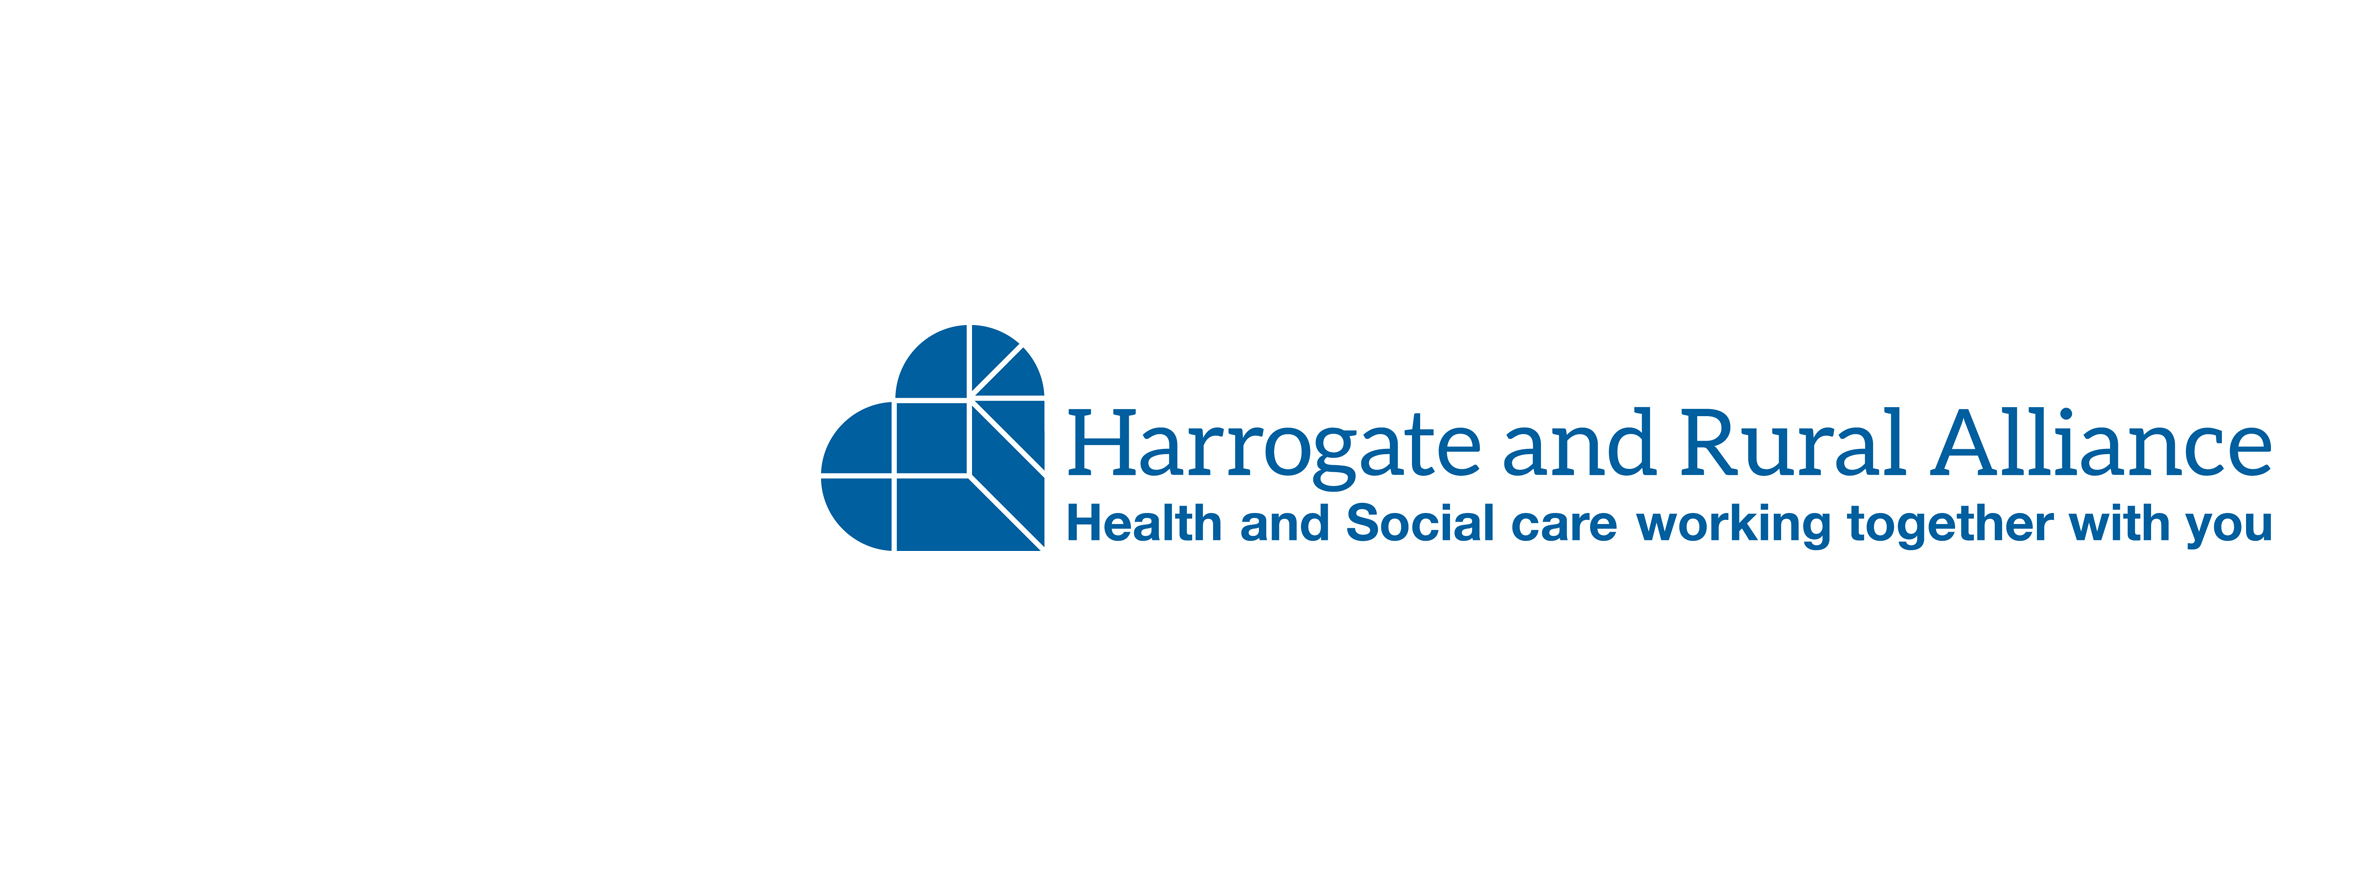 Learn more about Harrogate and Rural Alliance